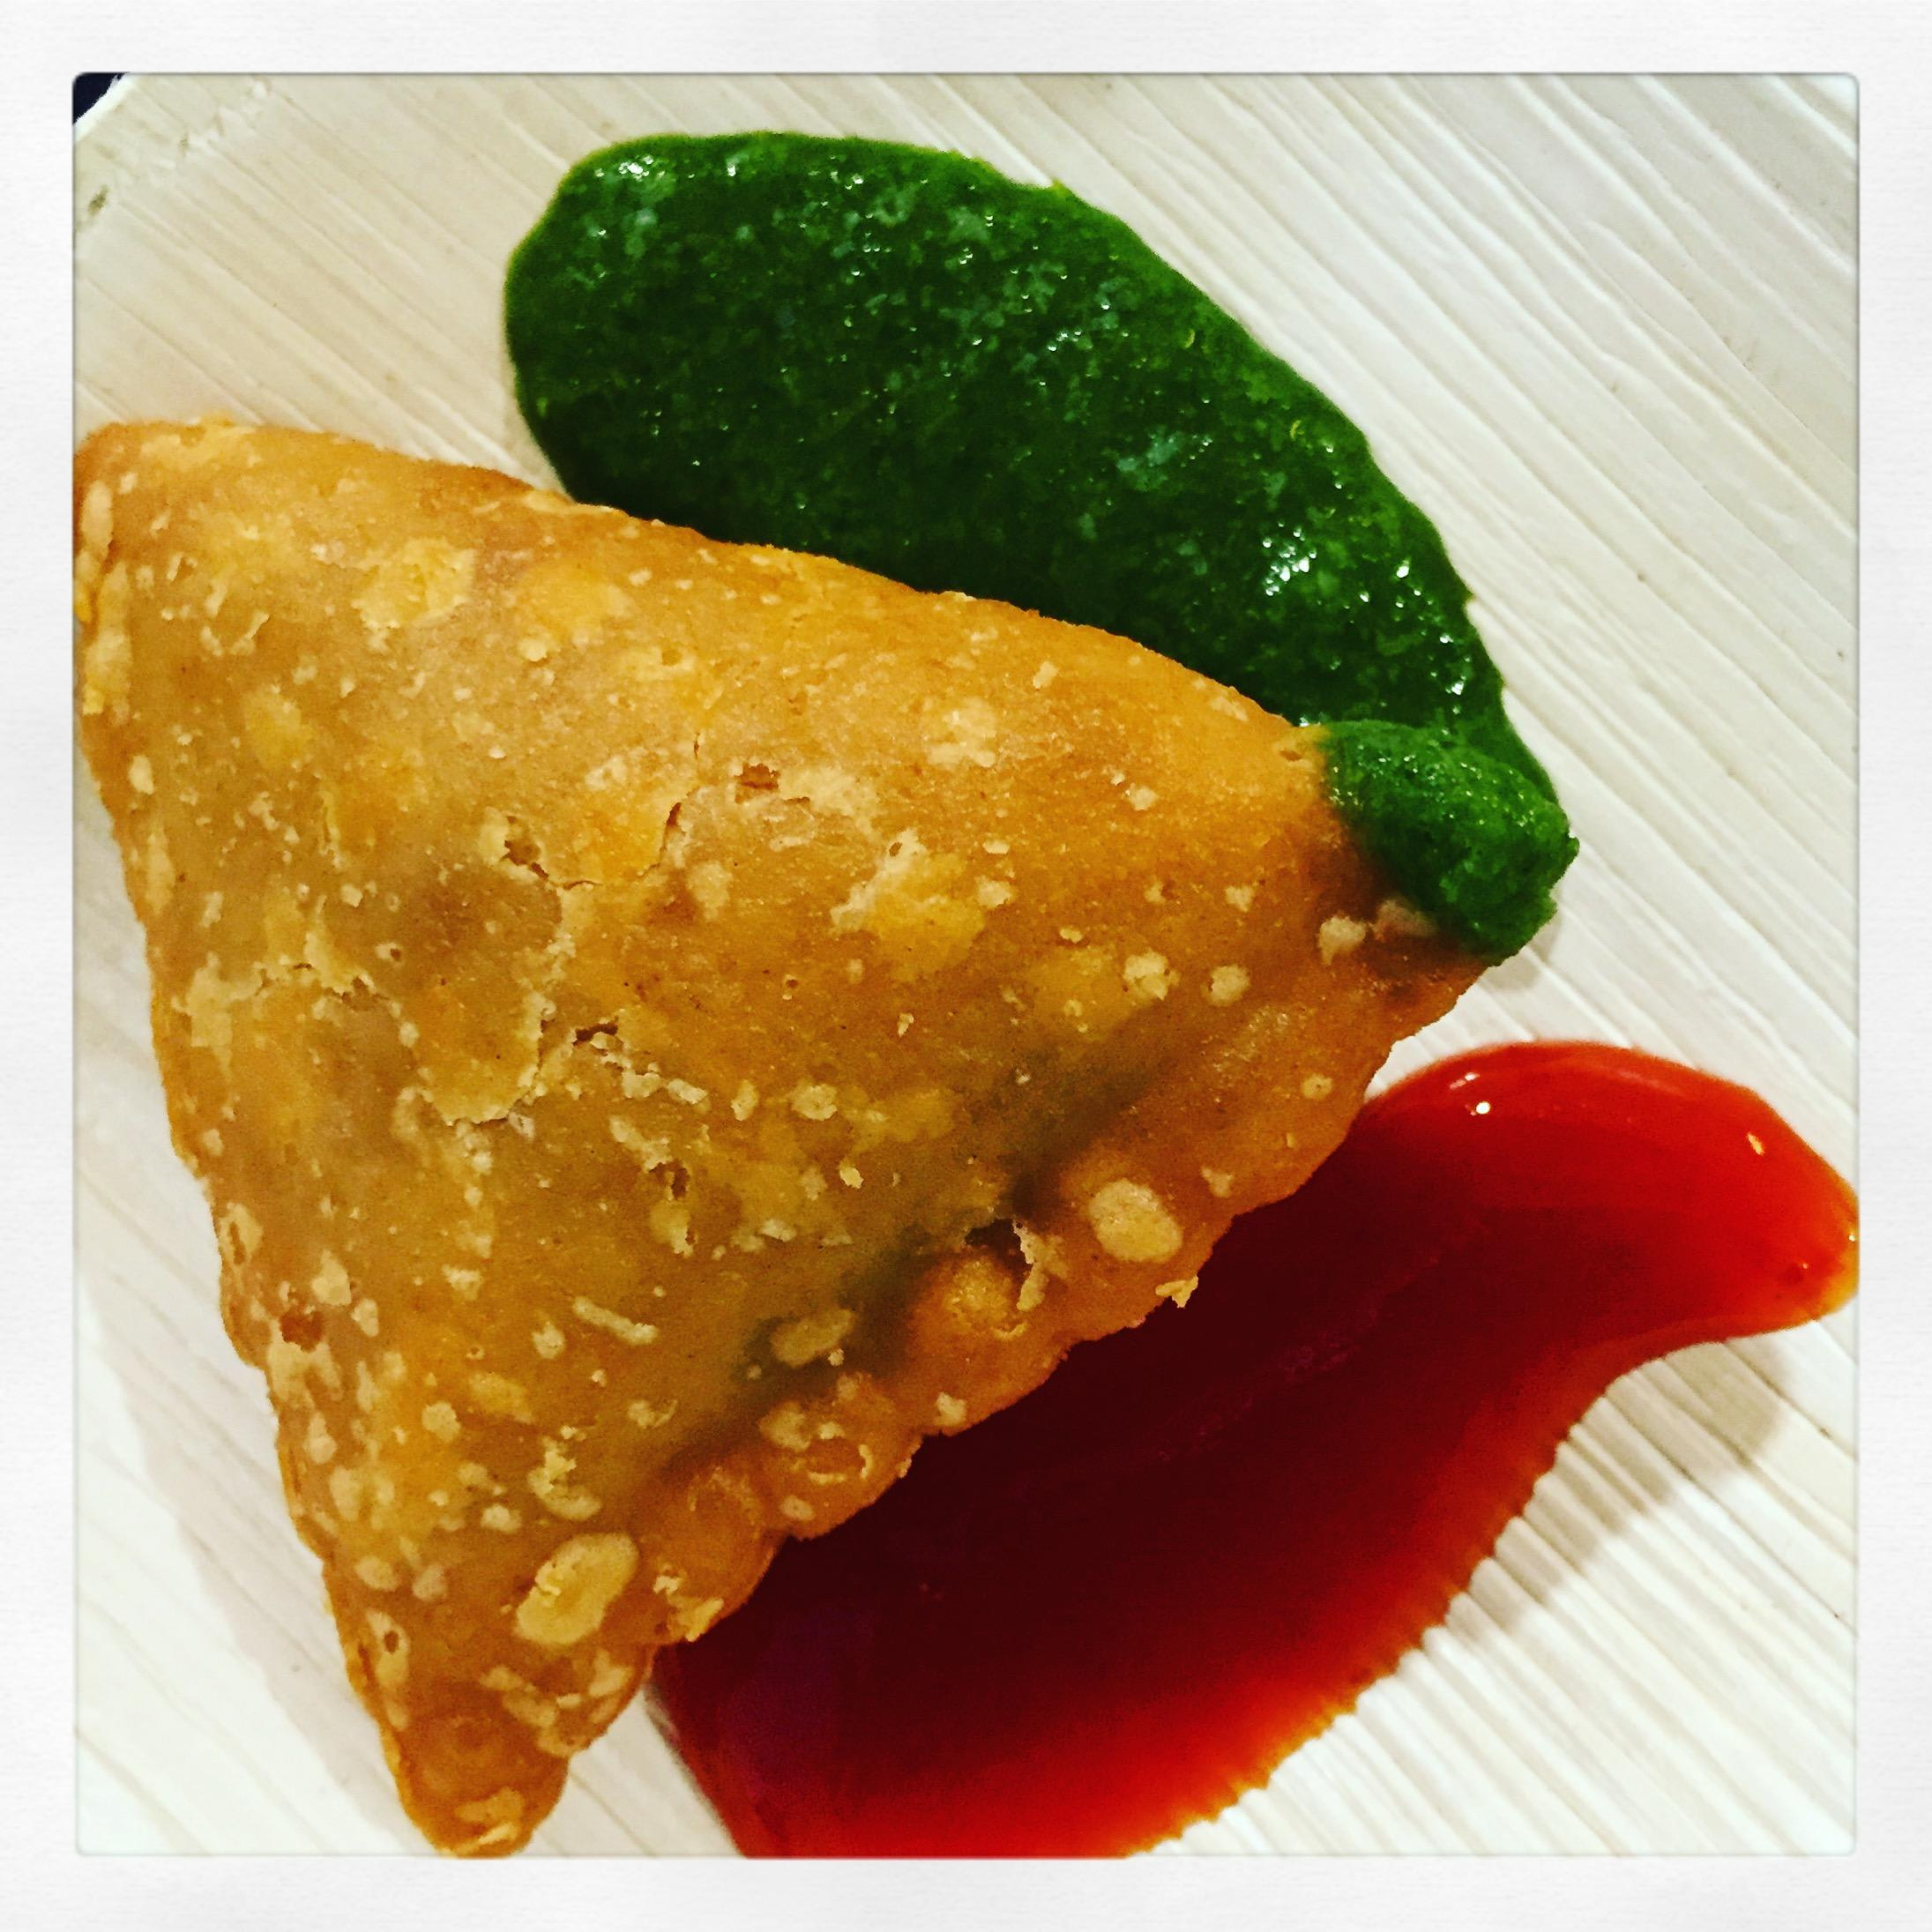 Delectable samosas with fresh made cilantro mint chutney and hot & sweet ketchup at Bombay Wraps